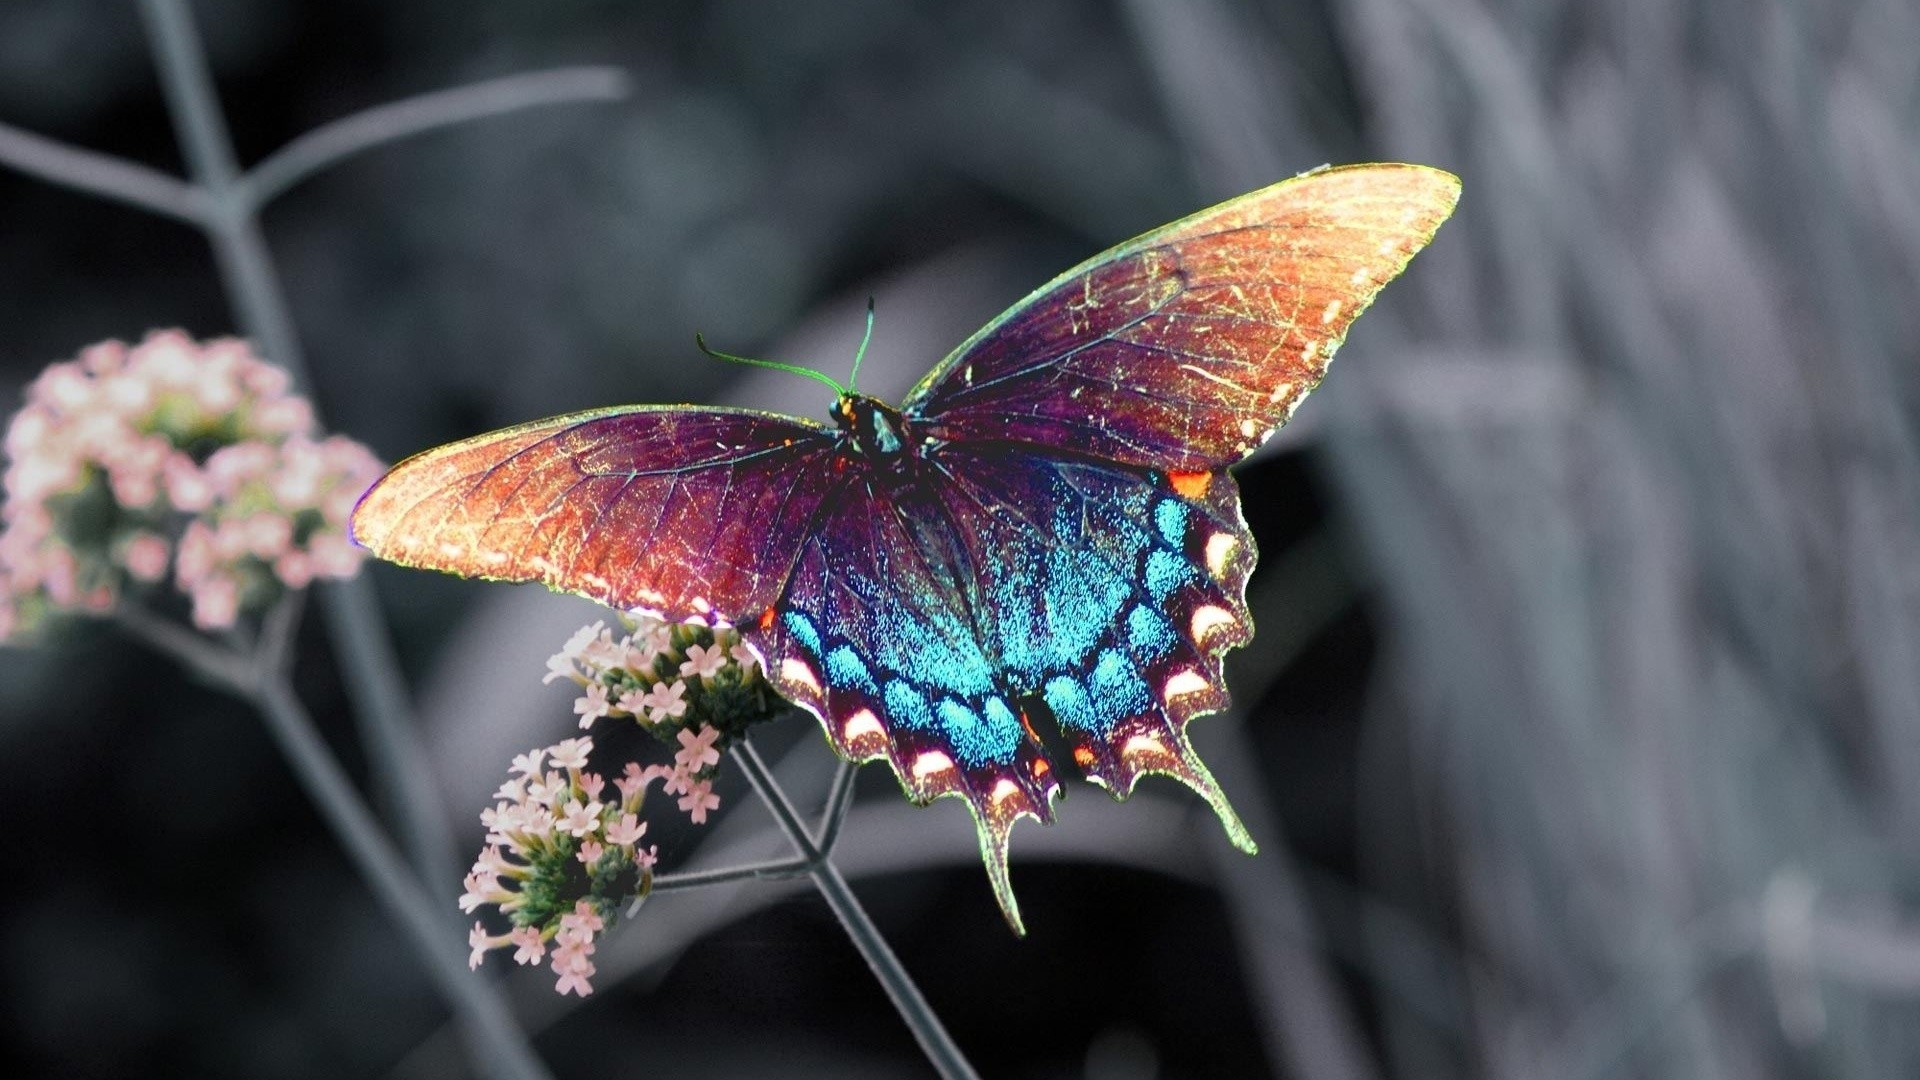 Res: 1920x1080, Butterfly Hd Wallpaper High Quality Resolution For Iphone Full Hd..